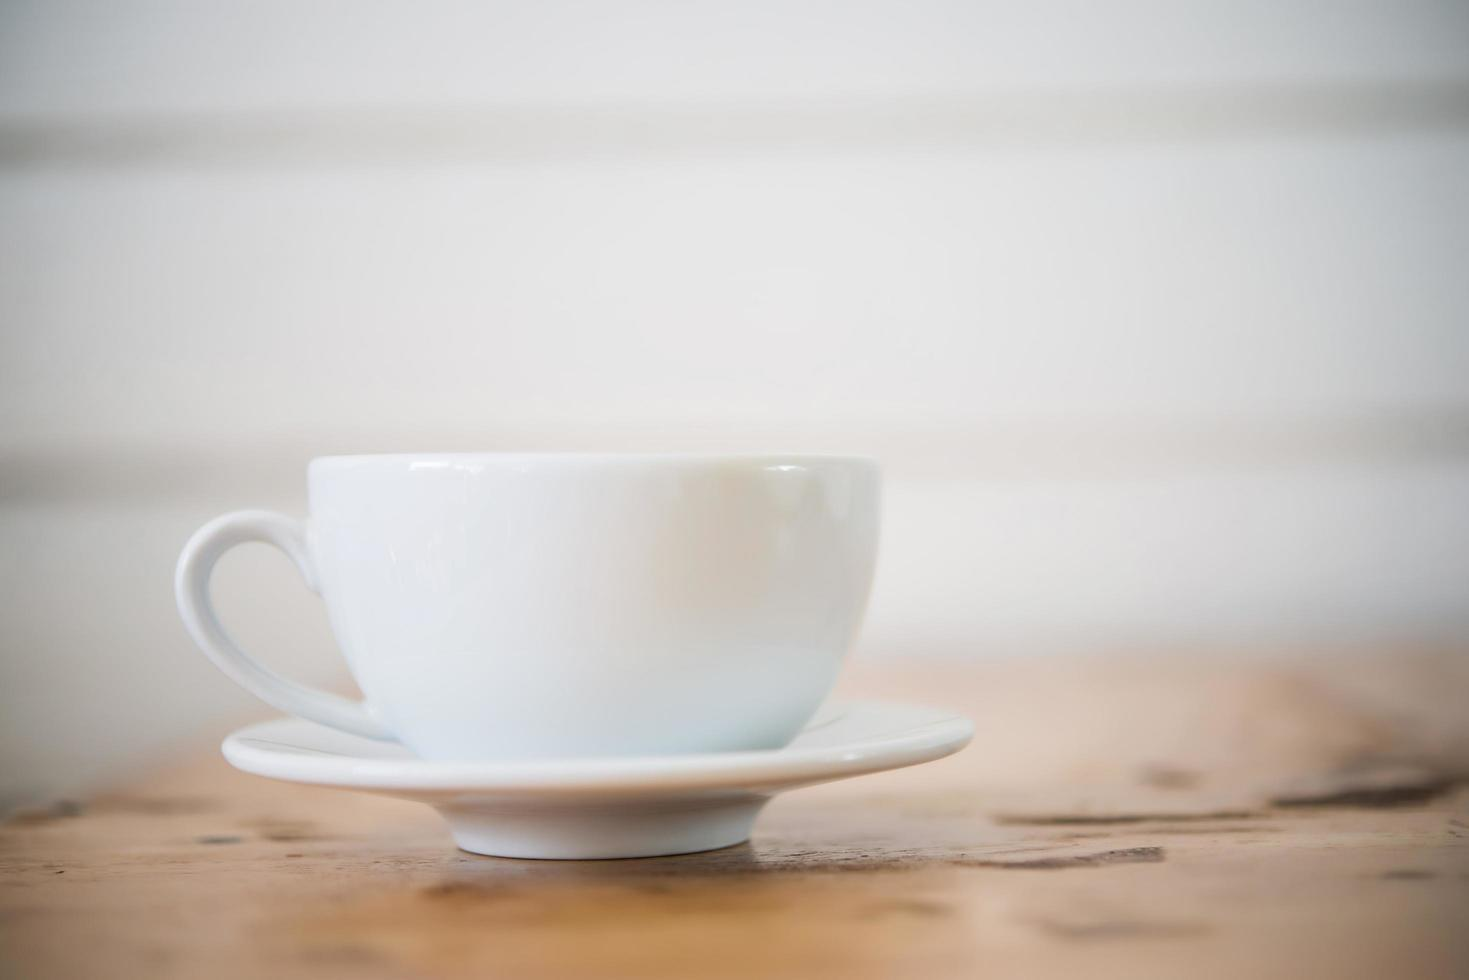 A cup of coffee on wooden table in cafe photo